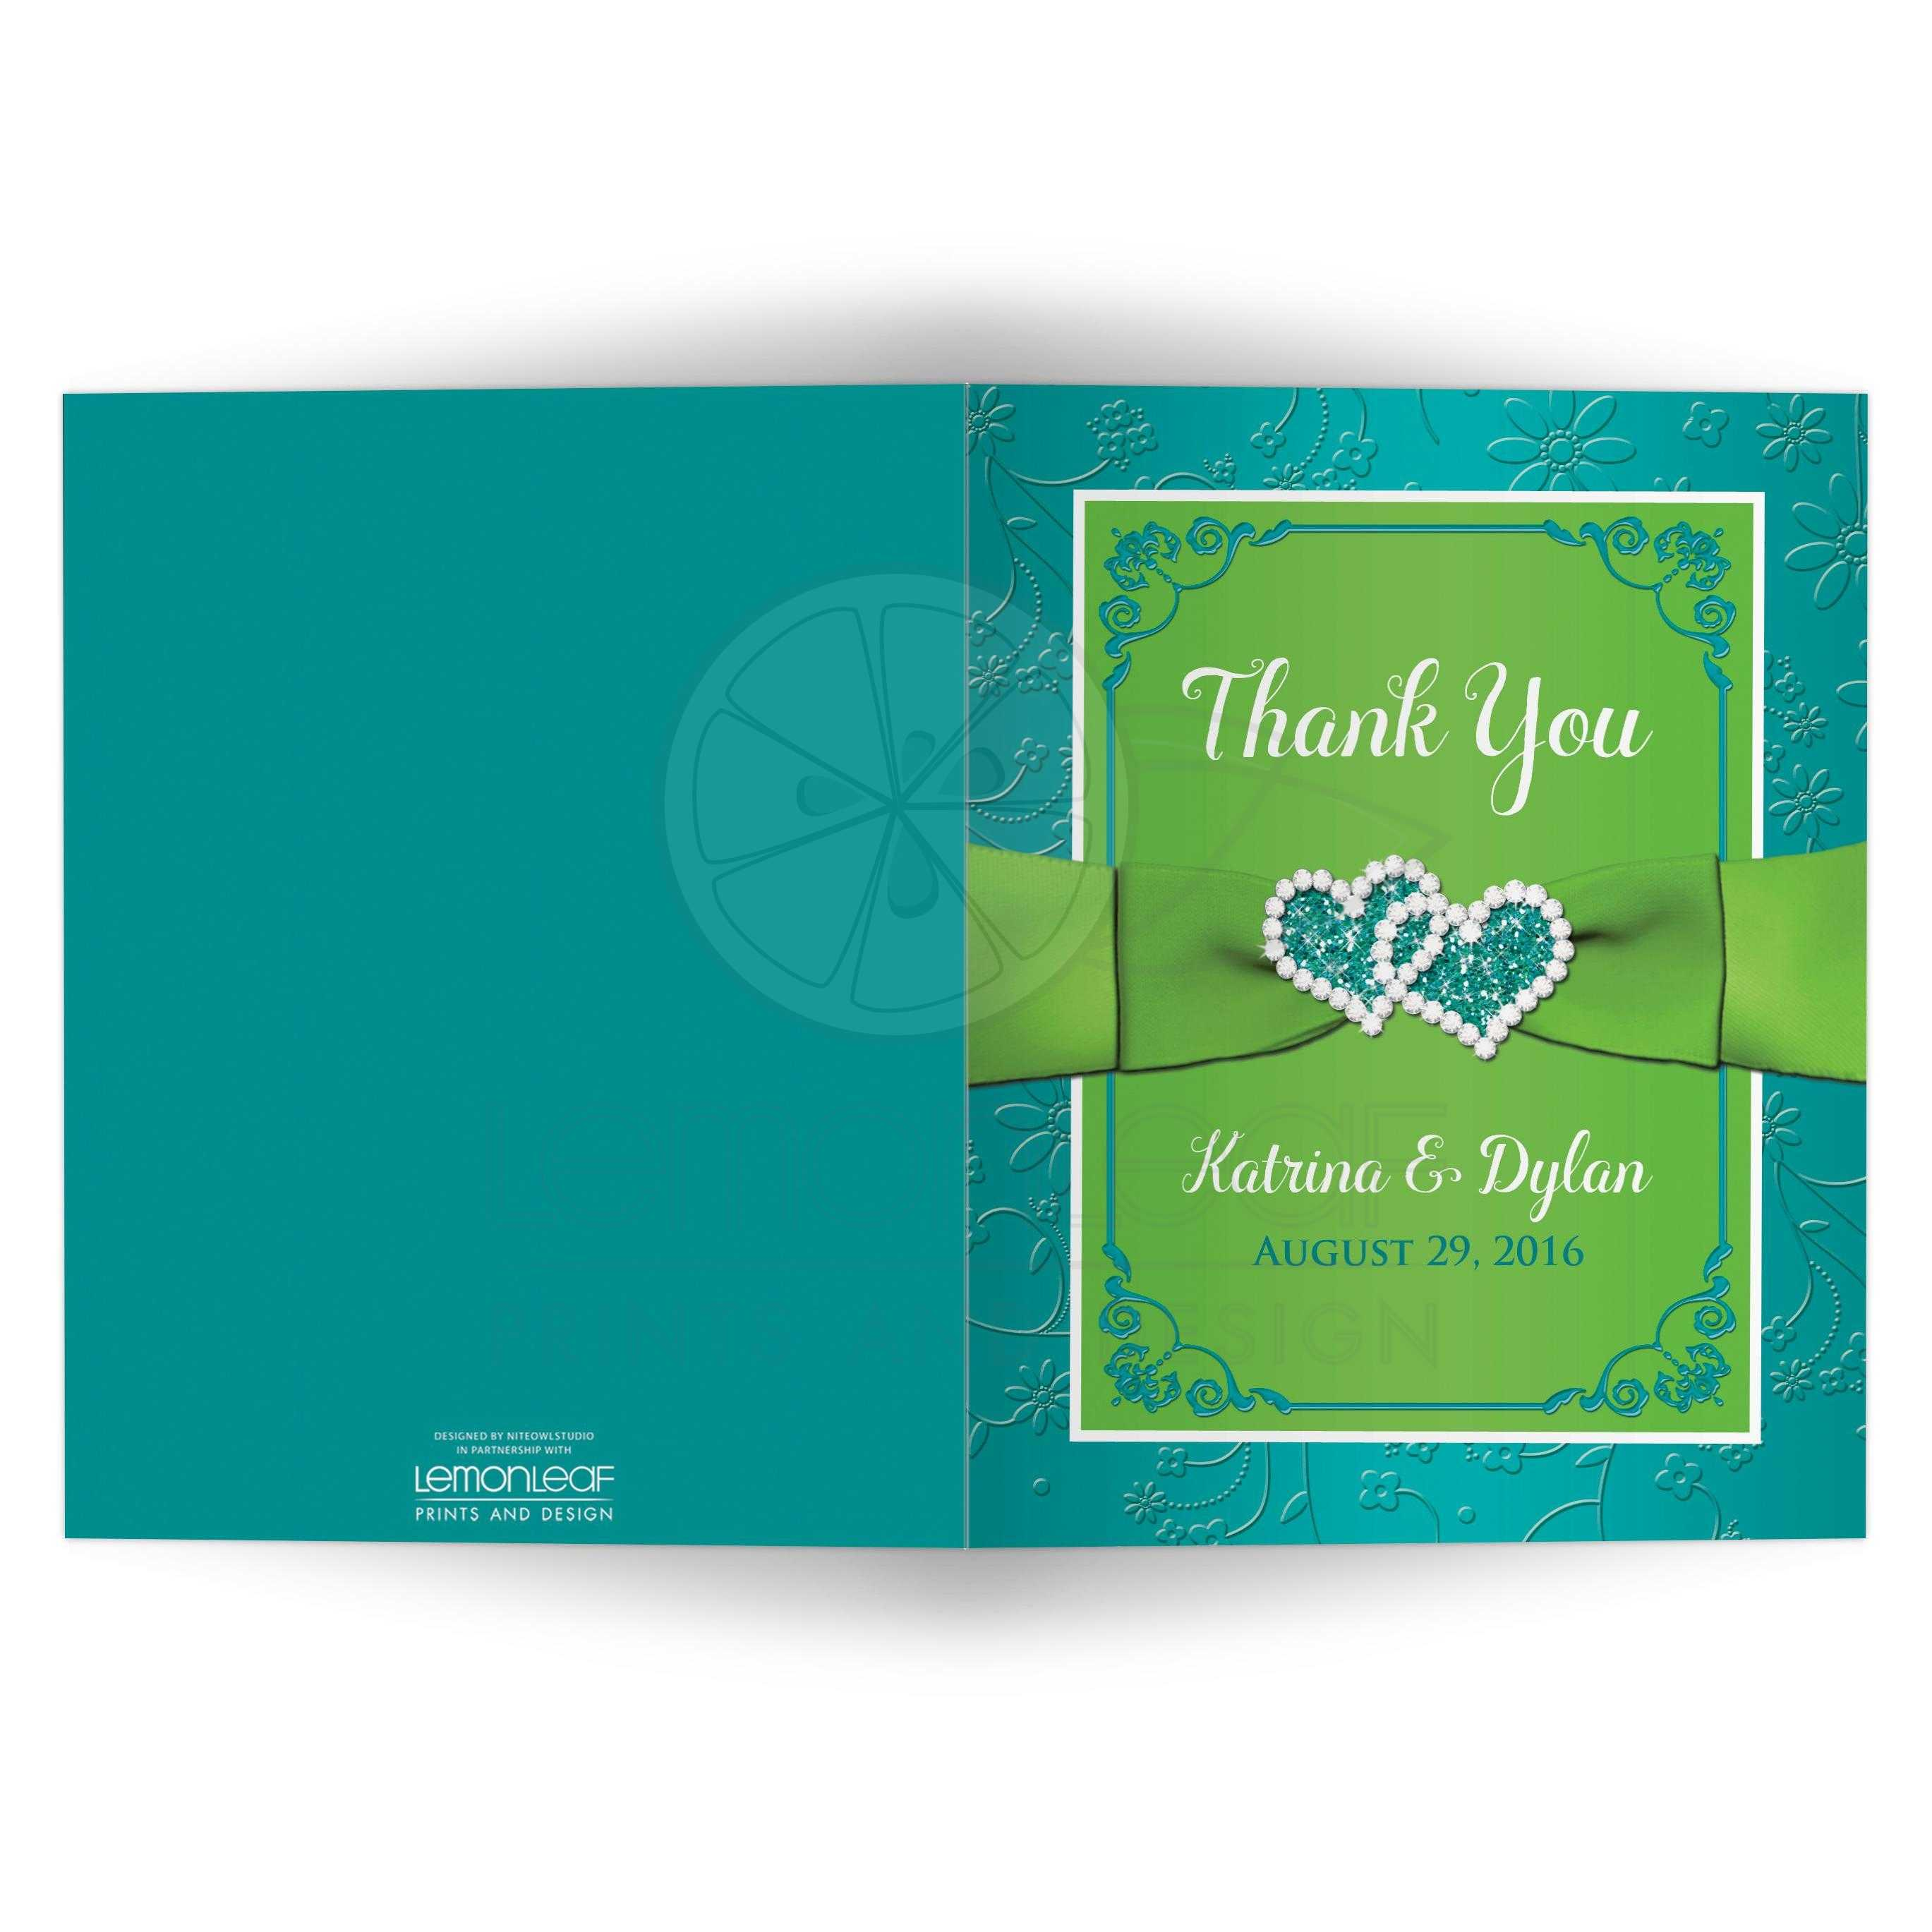 photo wedding thank you card turquoise lime green floral